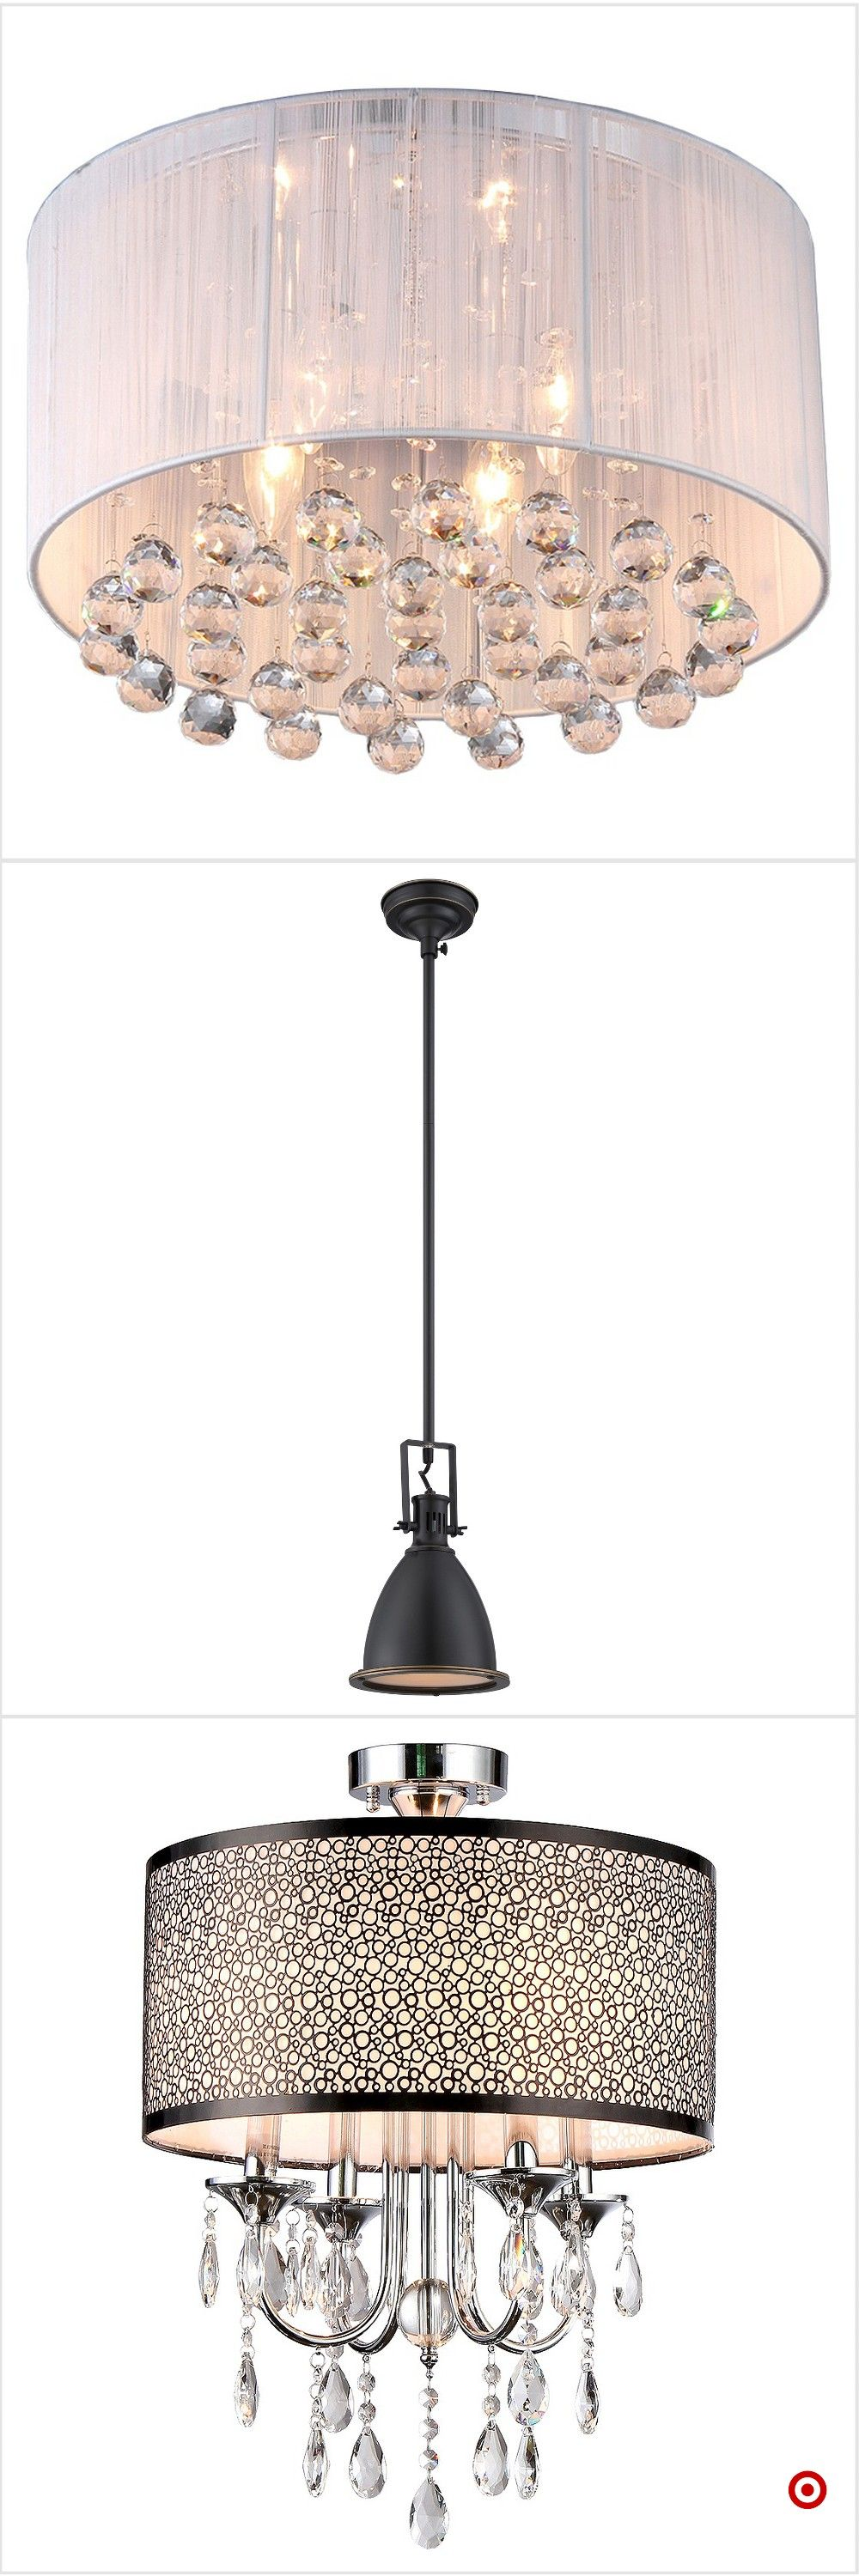 Shop Tar for ceiling lights you will love at great low prices